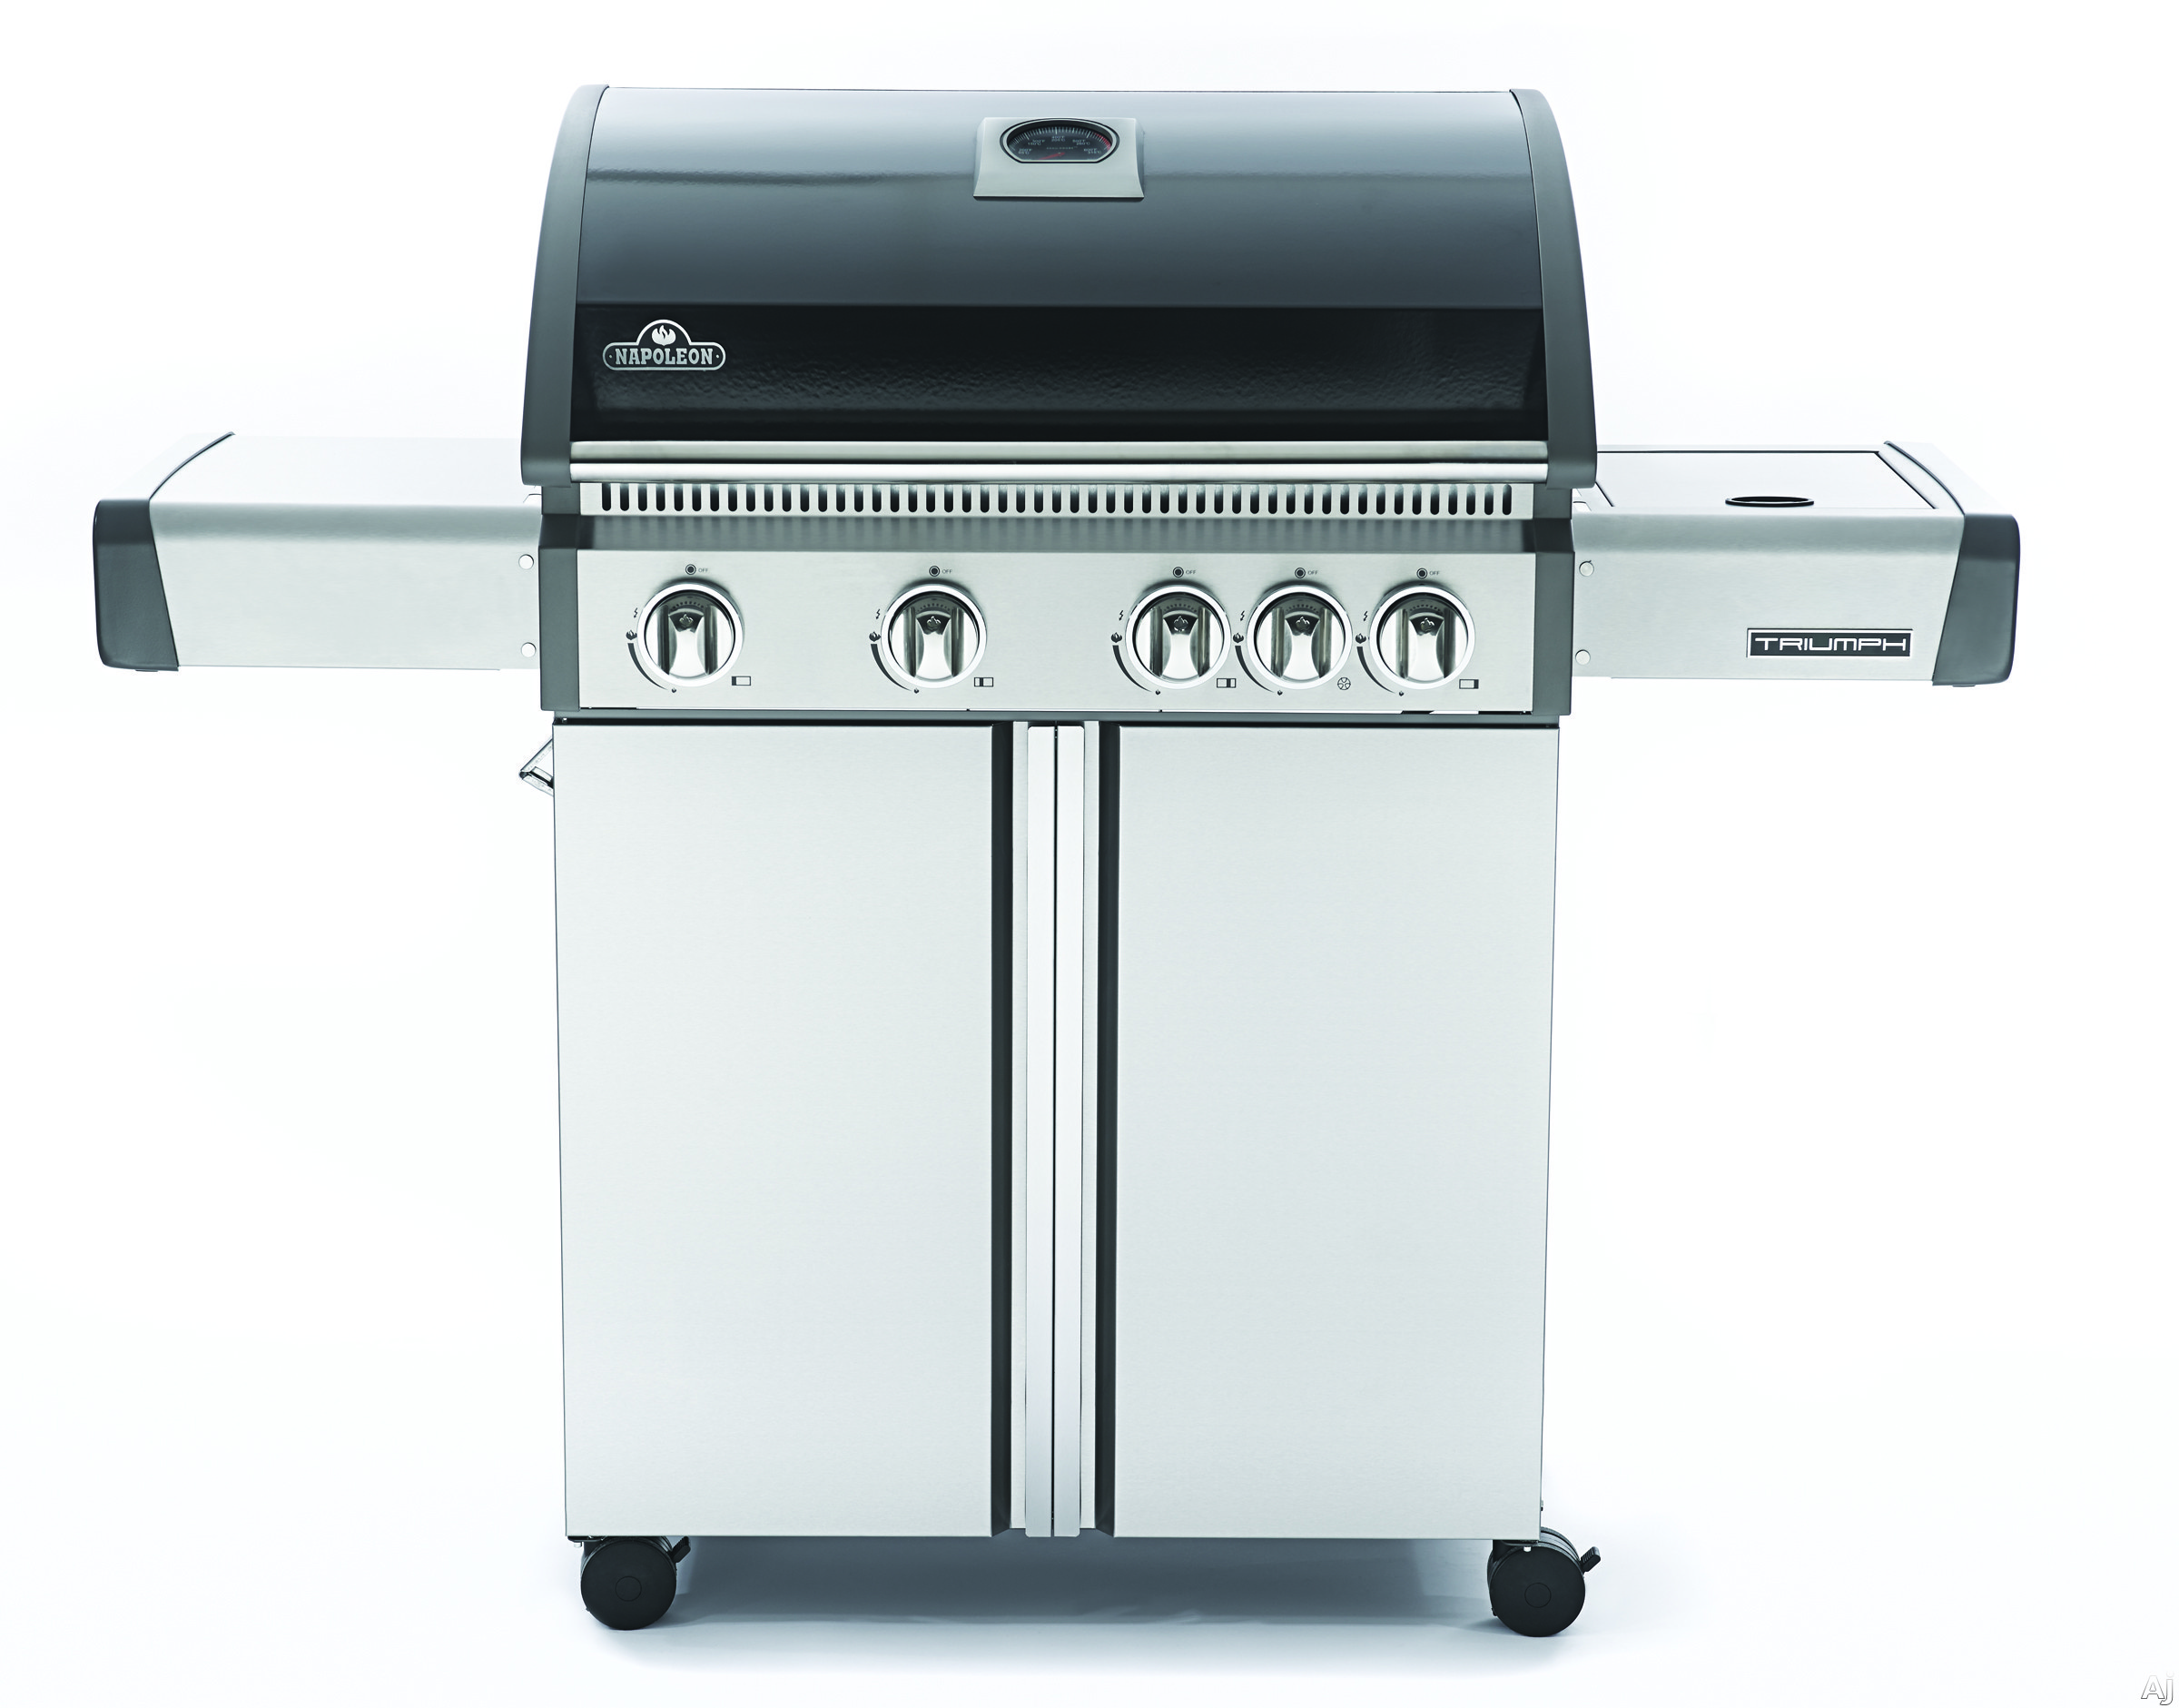 Napoleon Triumph Series T495SBPK 56 Inch Freestanding Gas Grill with 645 sq. in. Cooking Area, 57,200 Total BTU, 4 Main Burners, Side Burner, Cast Iron Cooking Grids, Warming Rack and Temperature Gaug